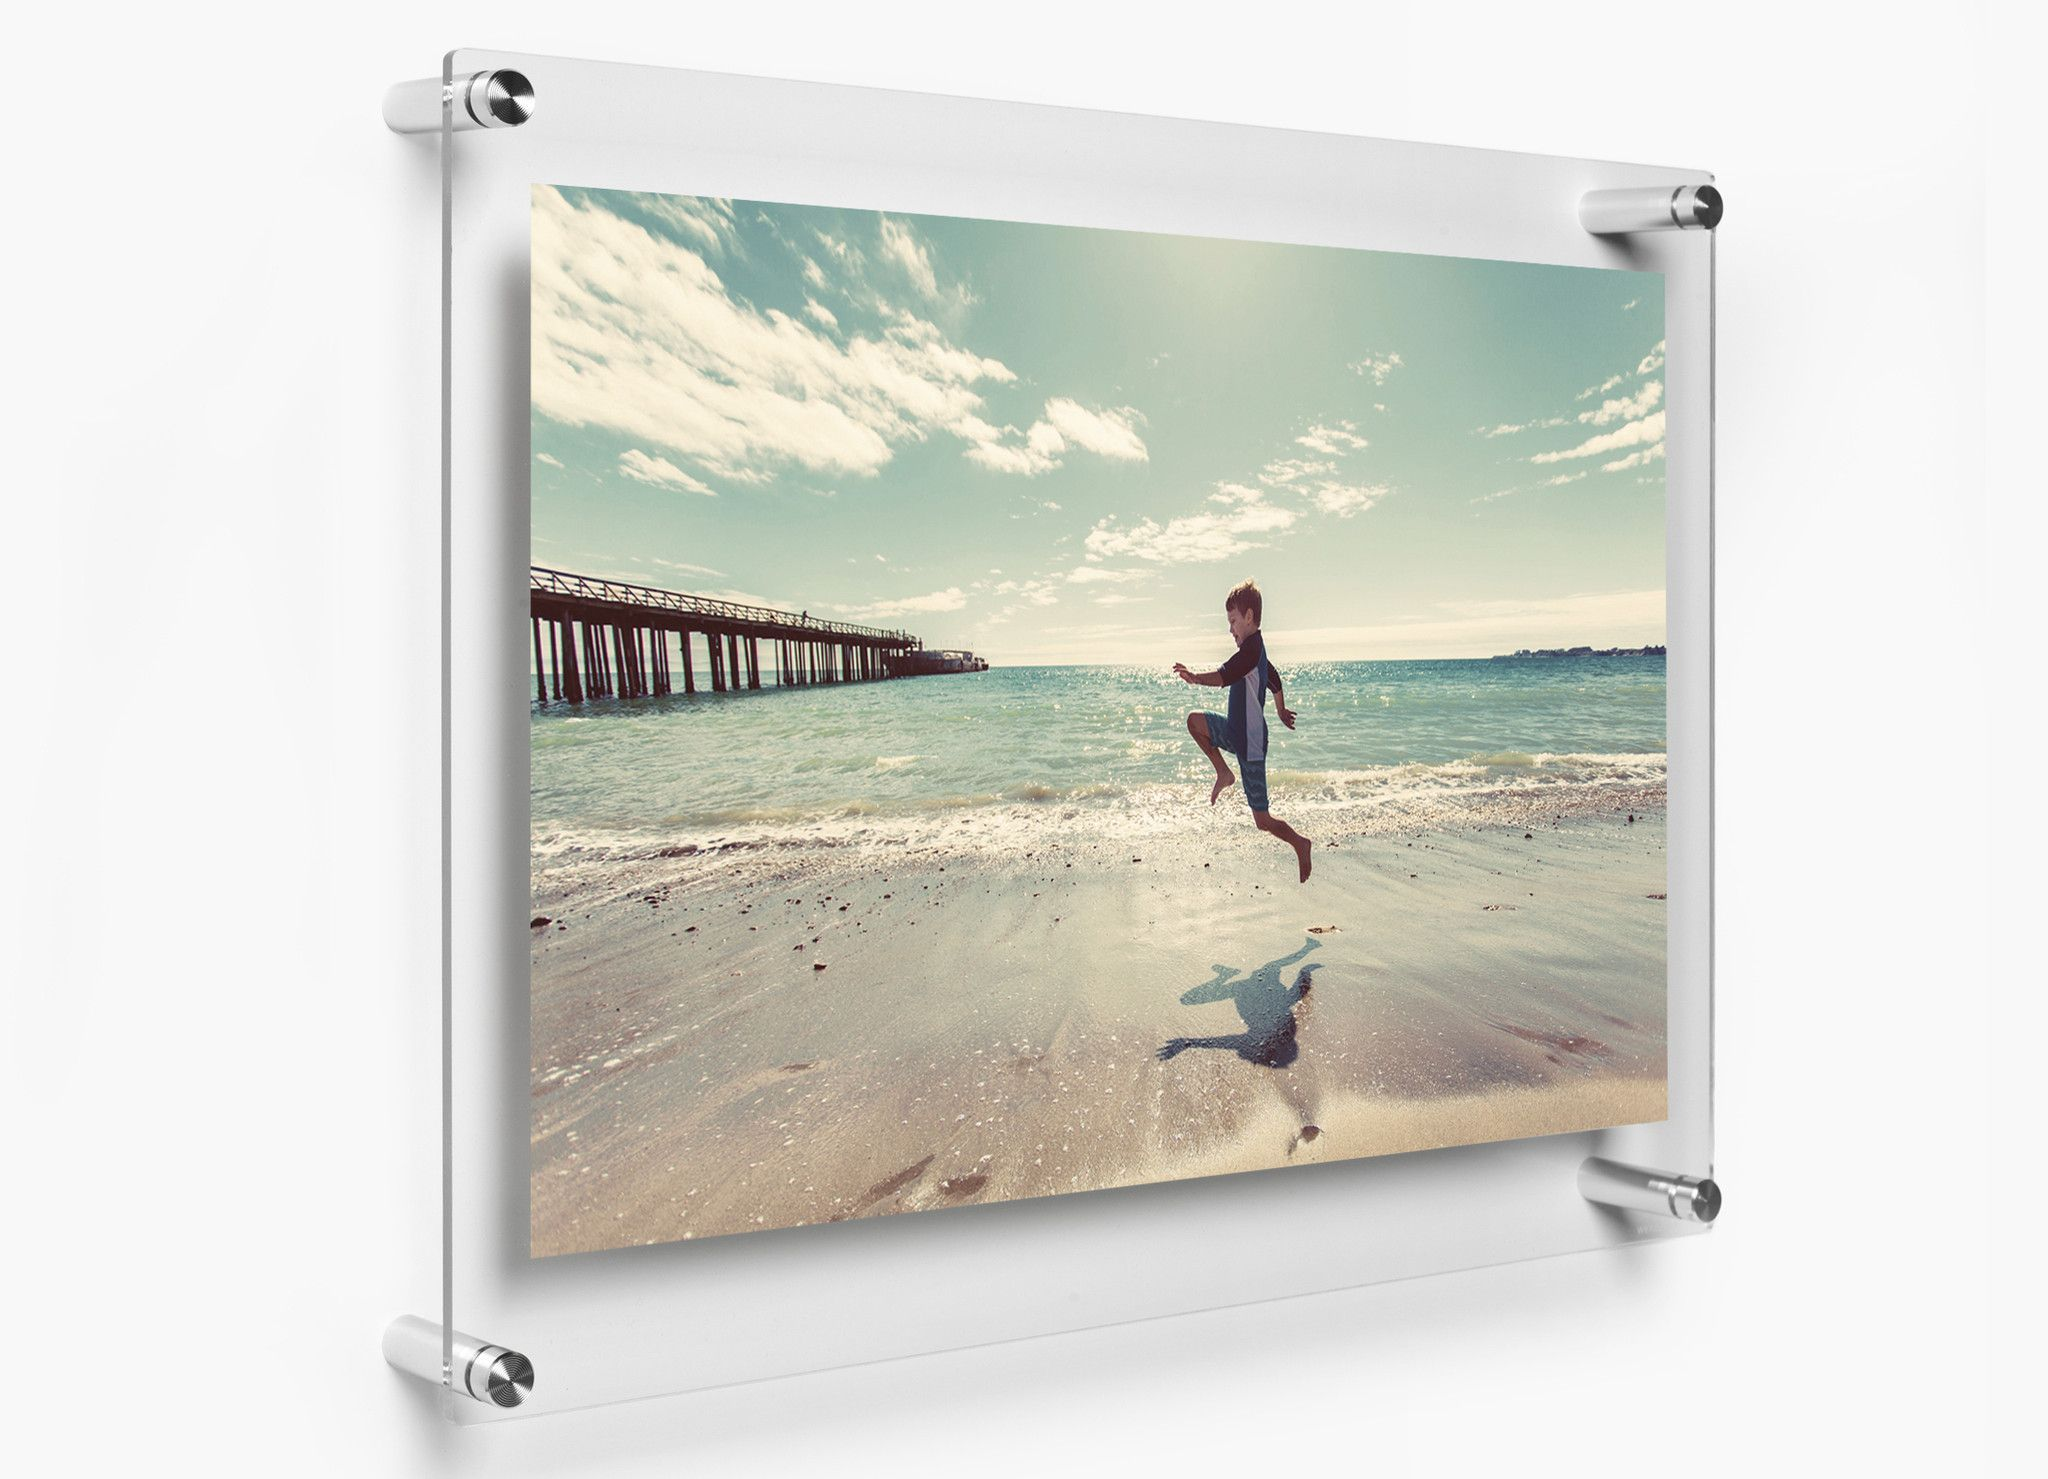 Double panel 19 x 23 wall frame for 16 x 20 artwork dr 1923dr double panel 19 x 23 wall frame for 16 x 20 artwork dr 1923dr jeuxipadfo Image collections